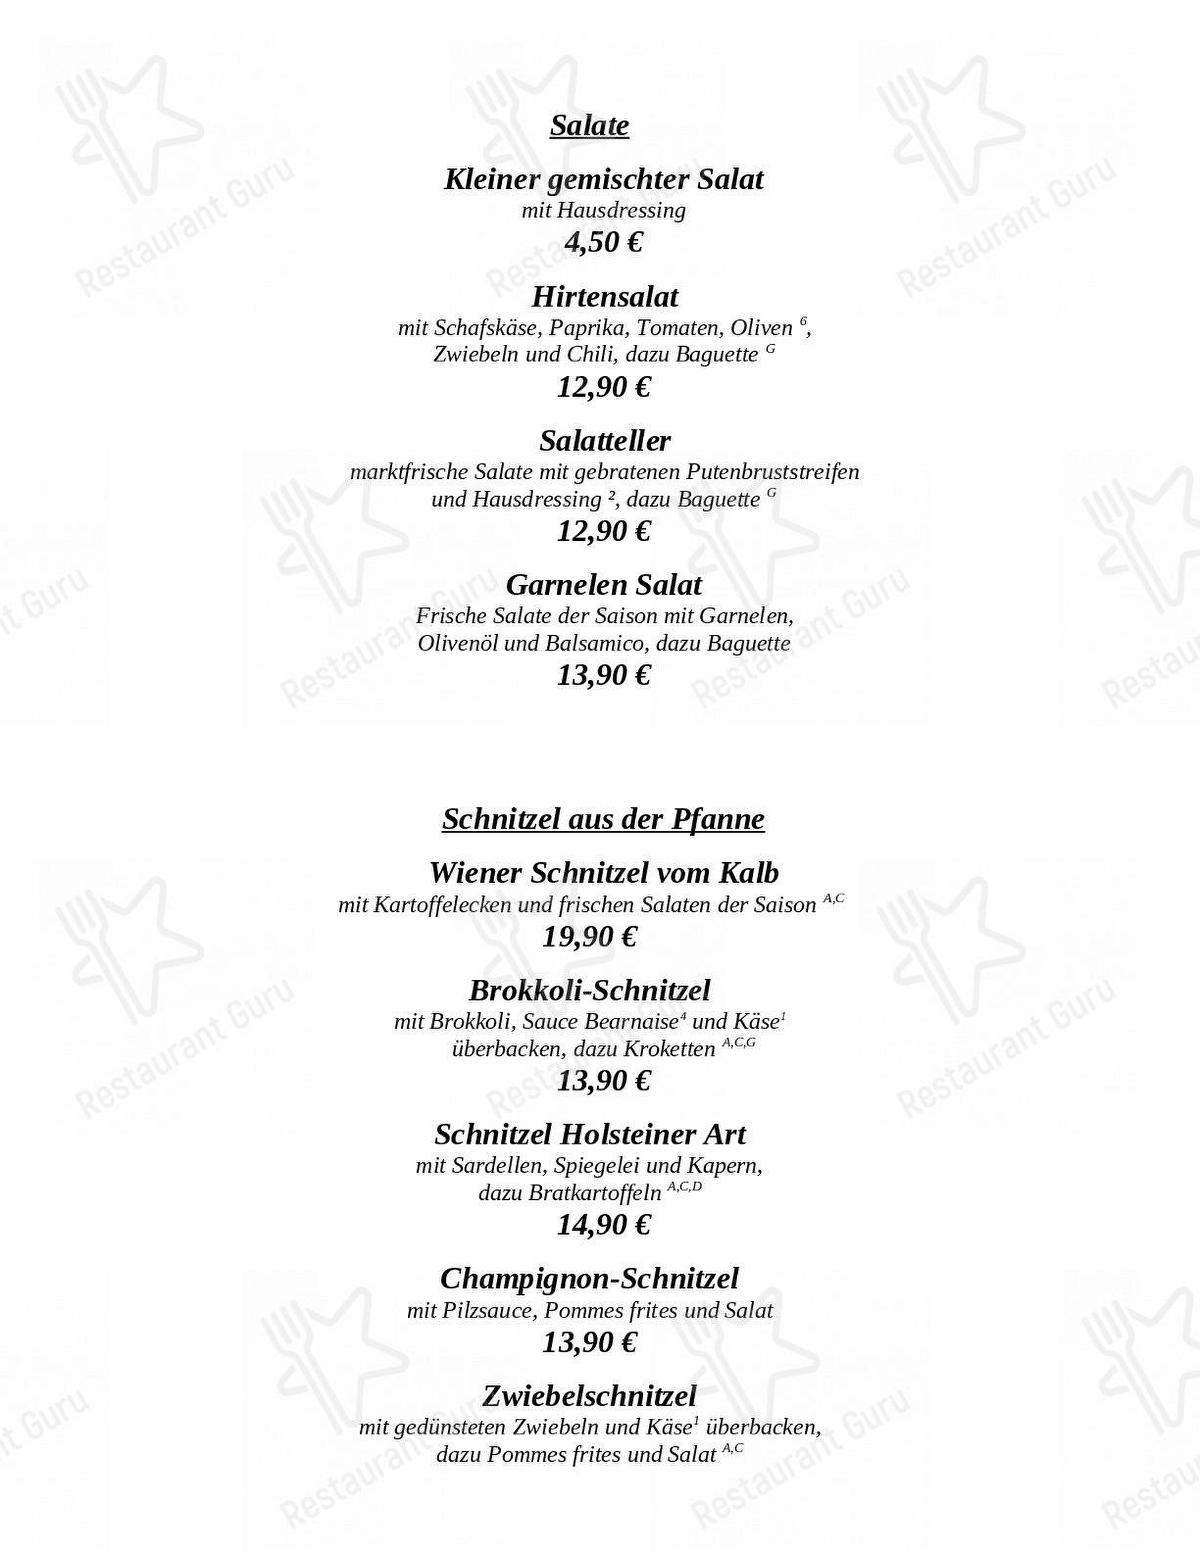 Klosterhof menu - dishes and beverages